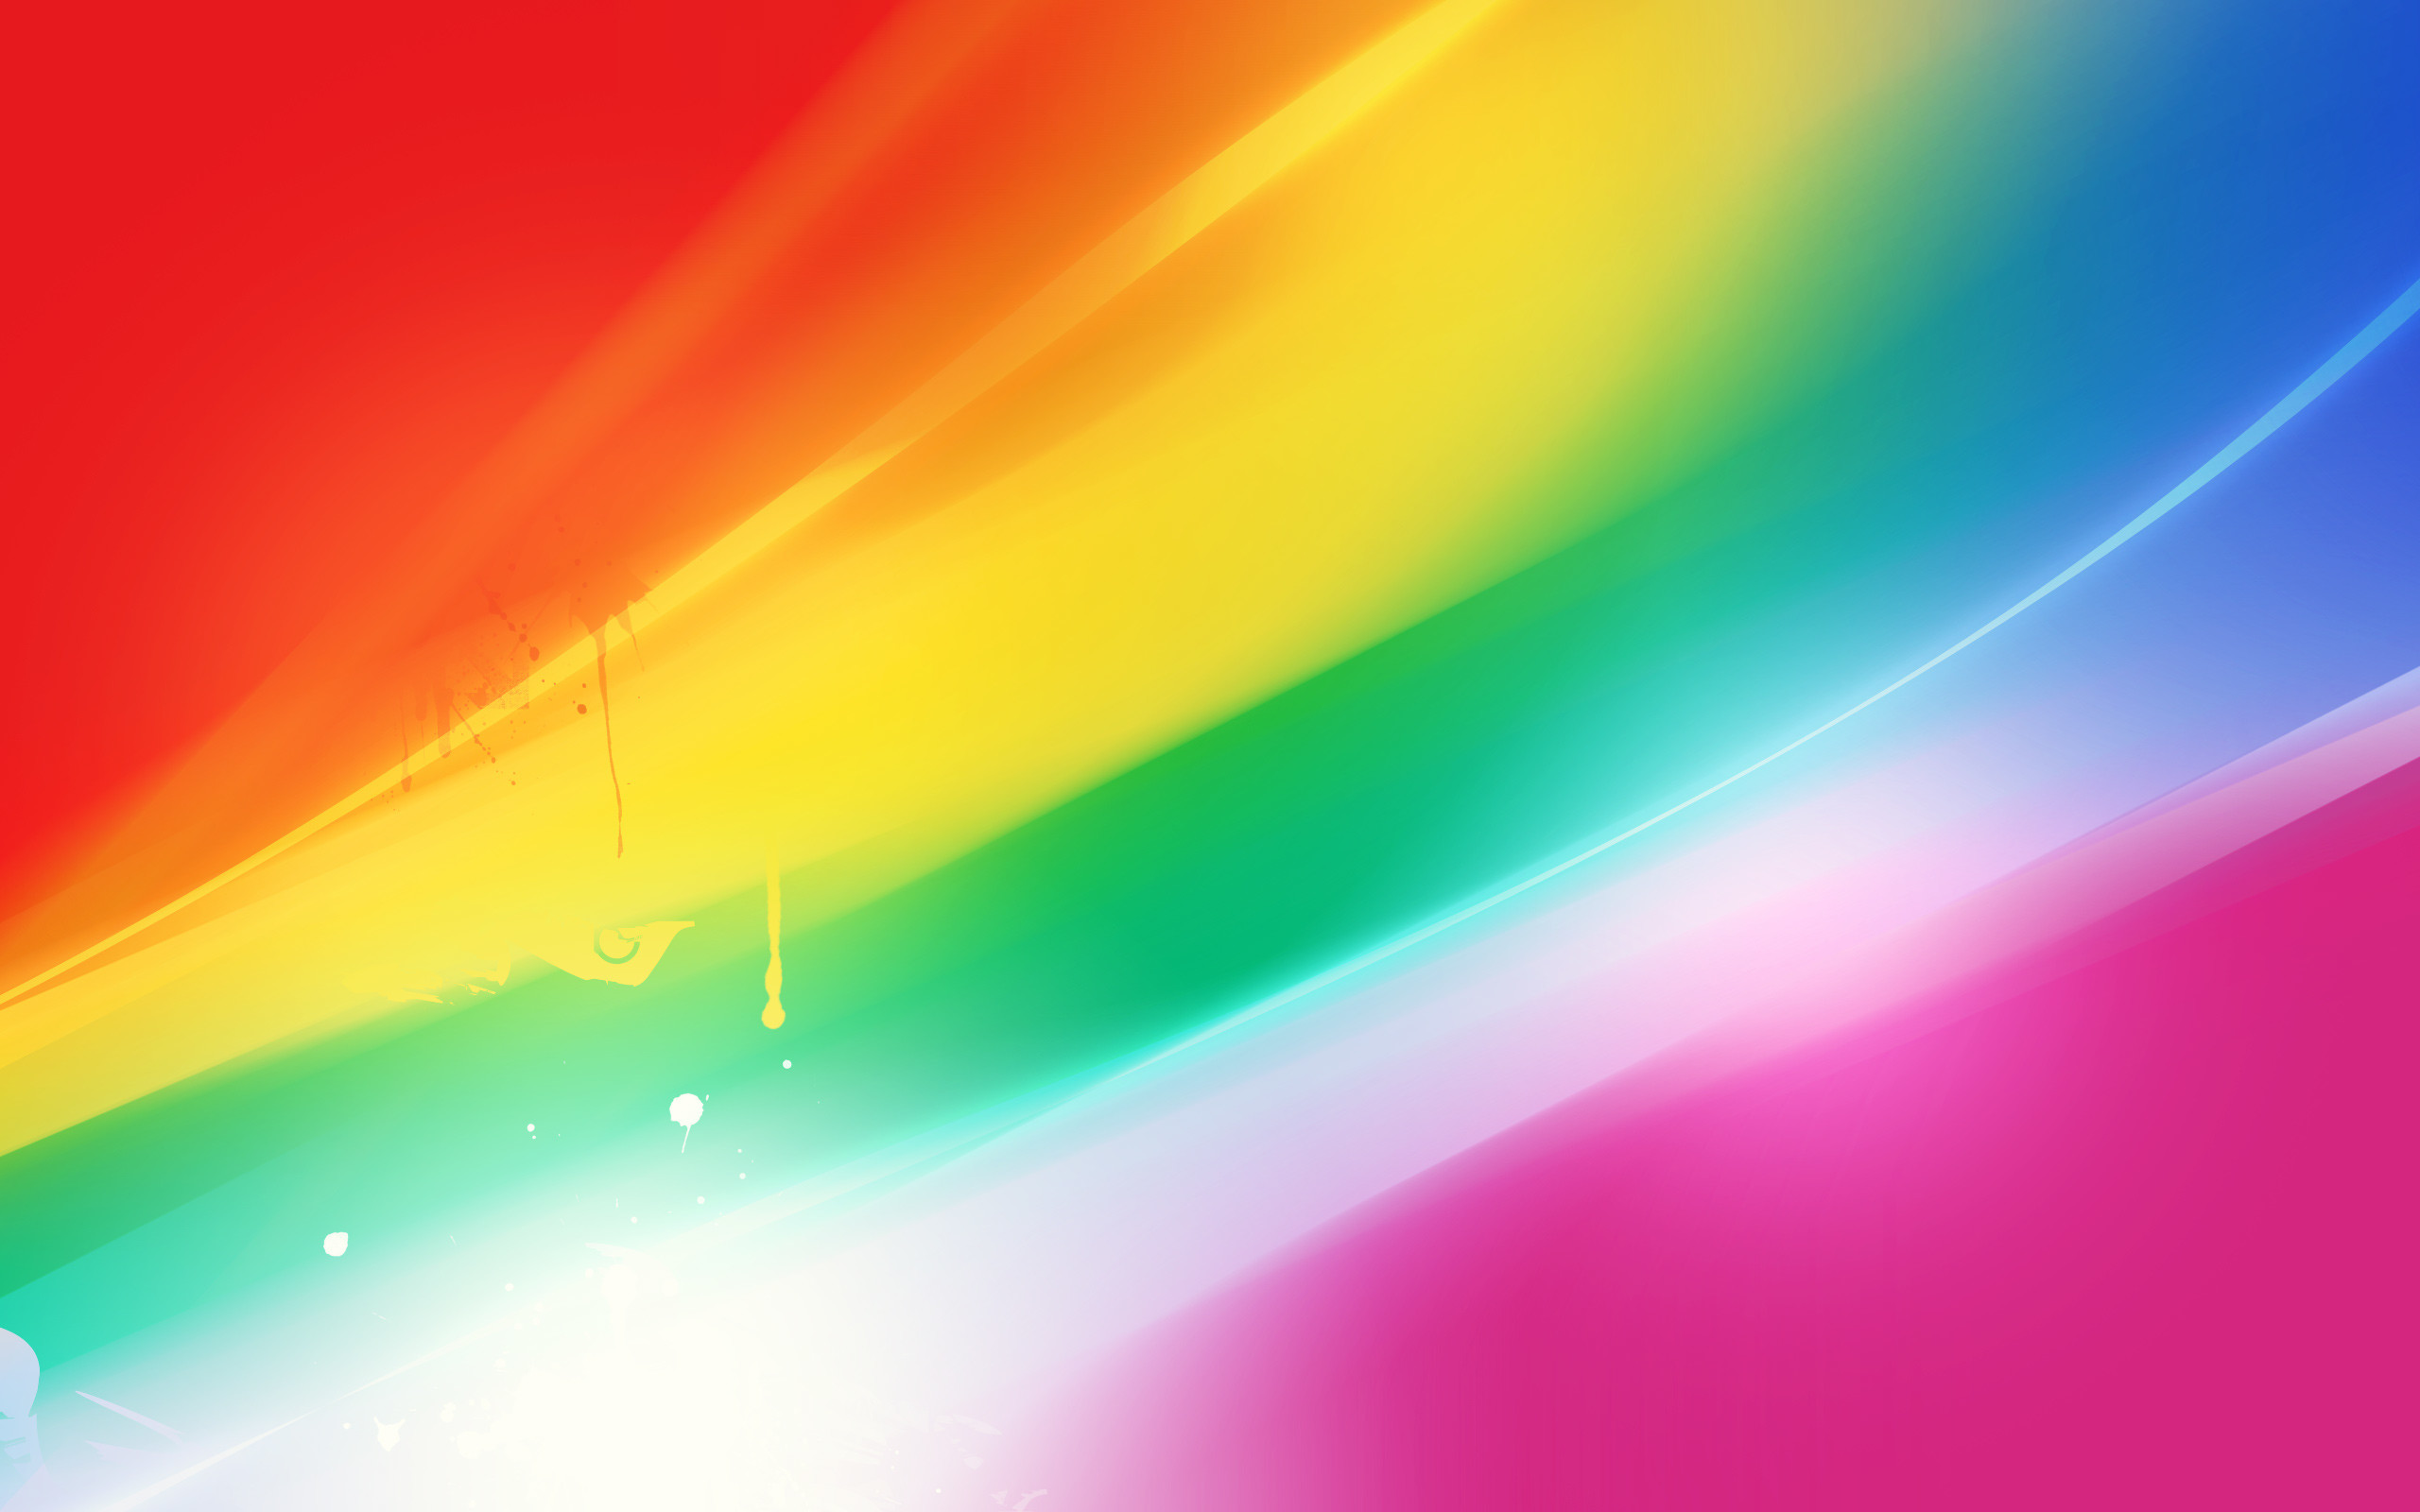 Colorful Background Wallpaper